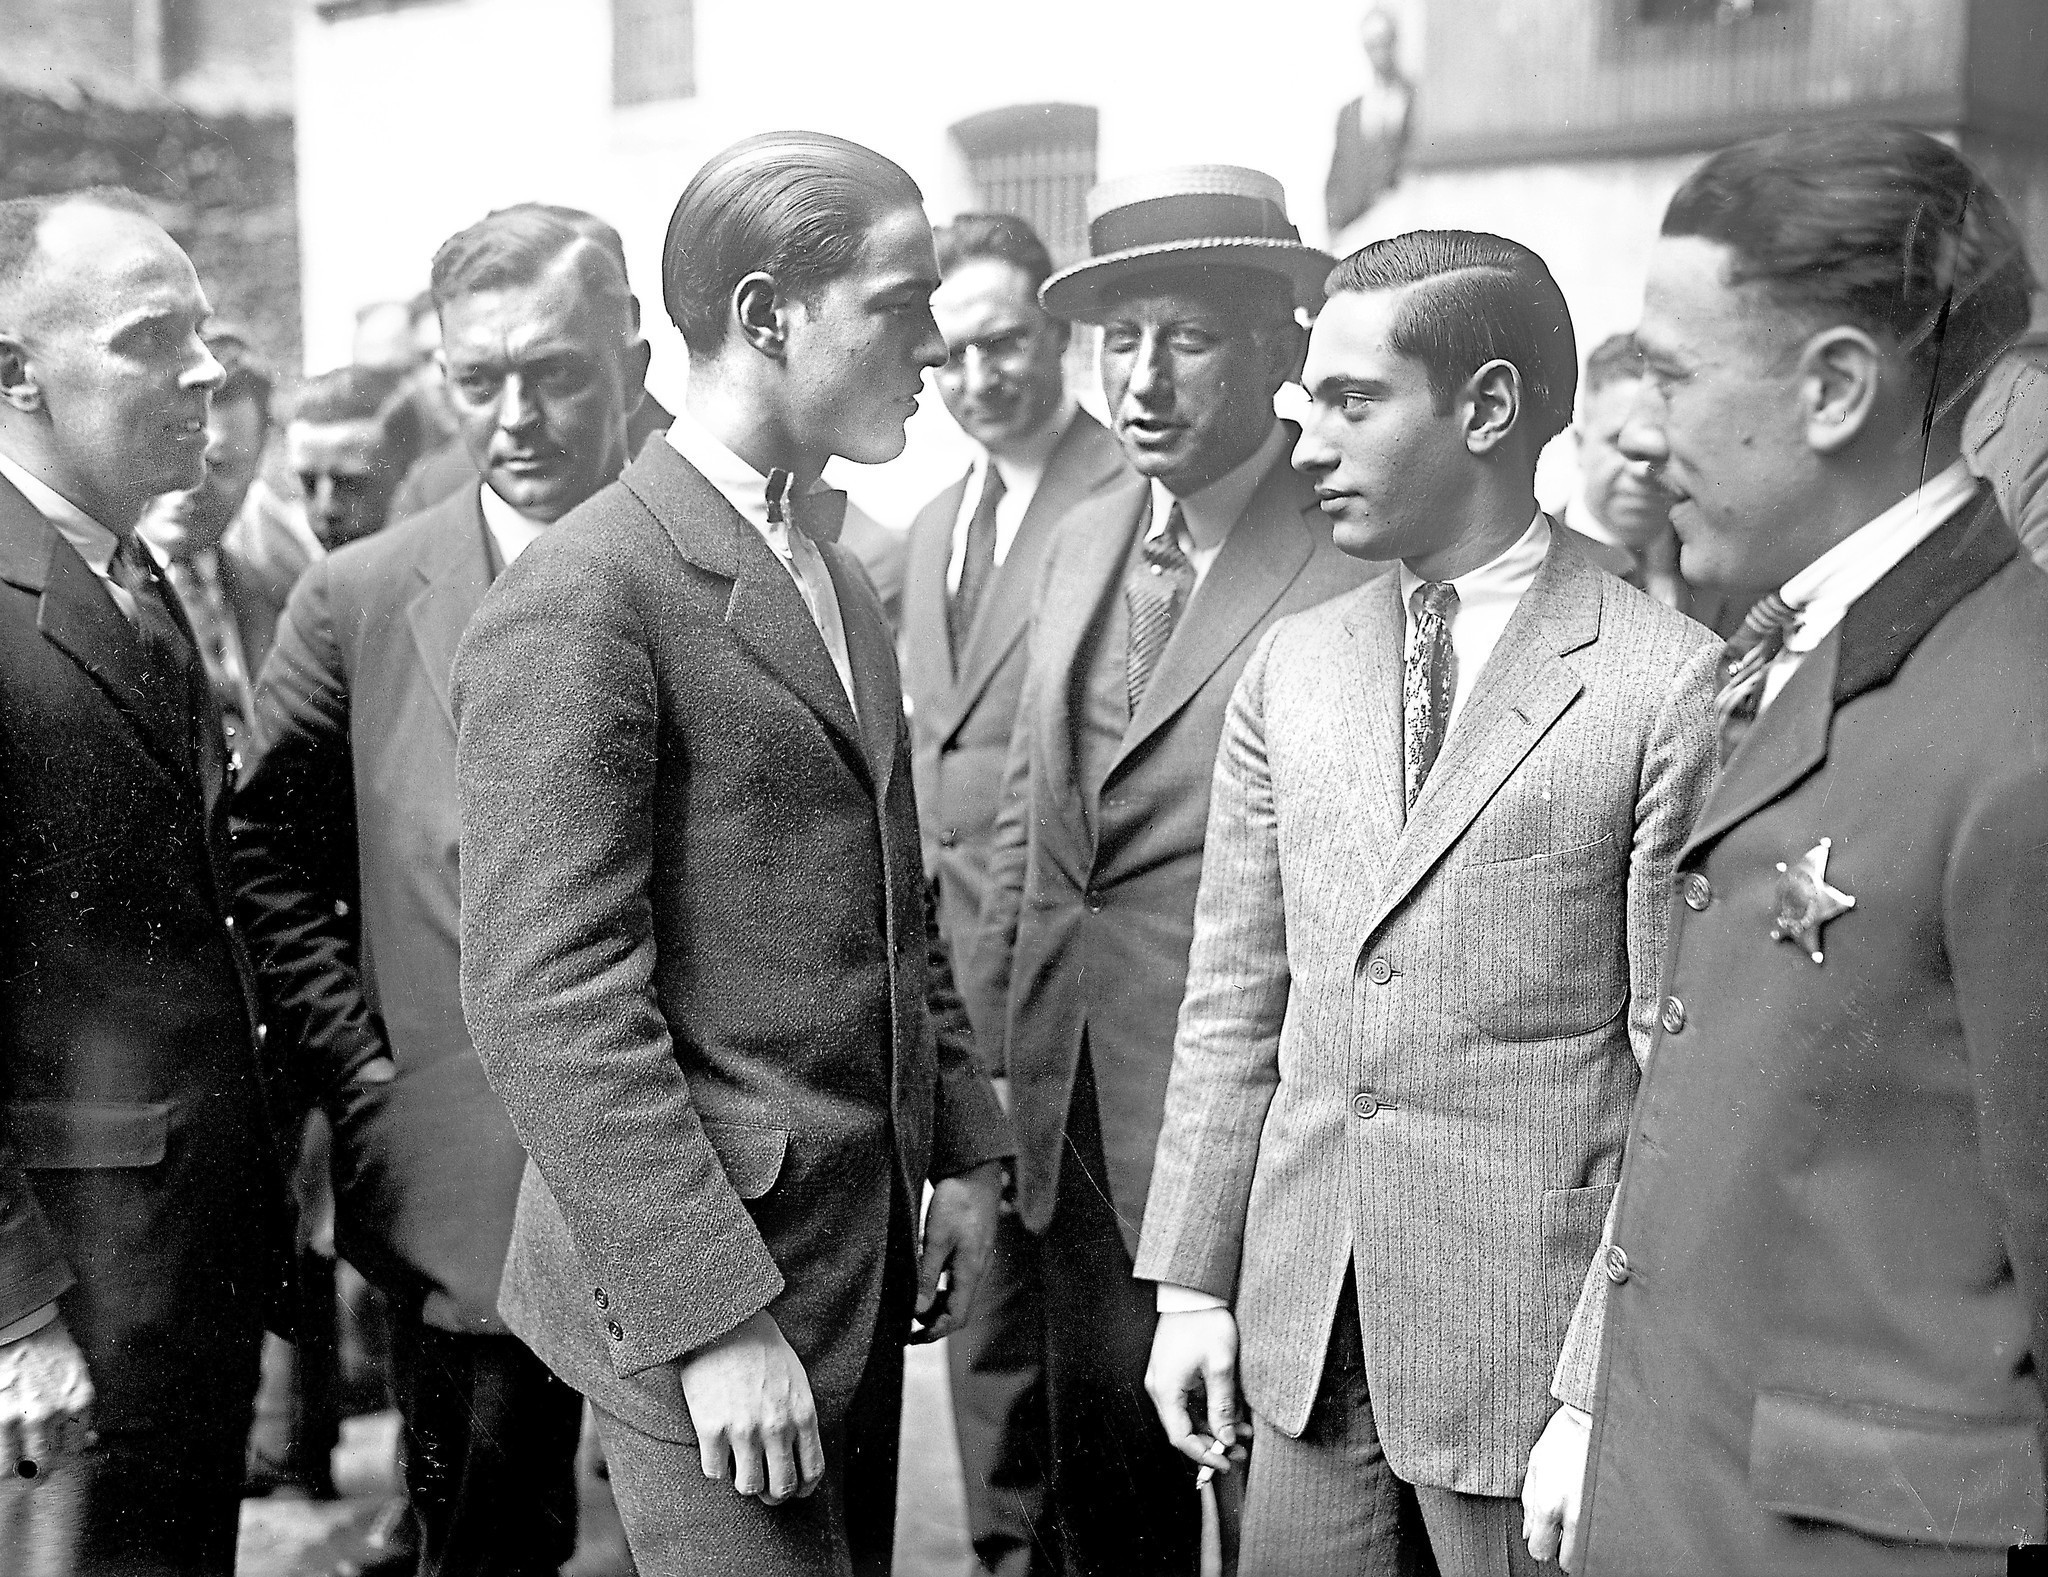 Northwestern to settle suit involving book on Leopold and Loeb murder trial